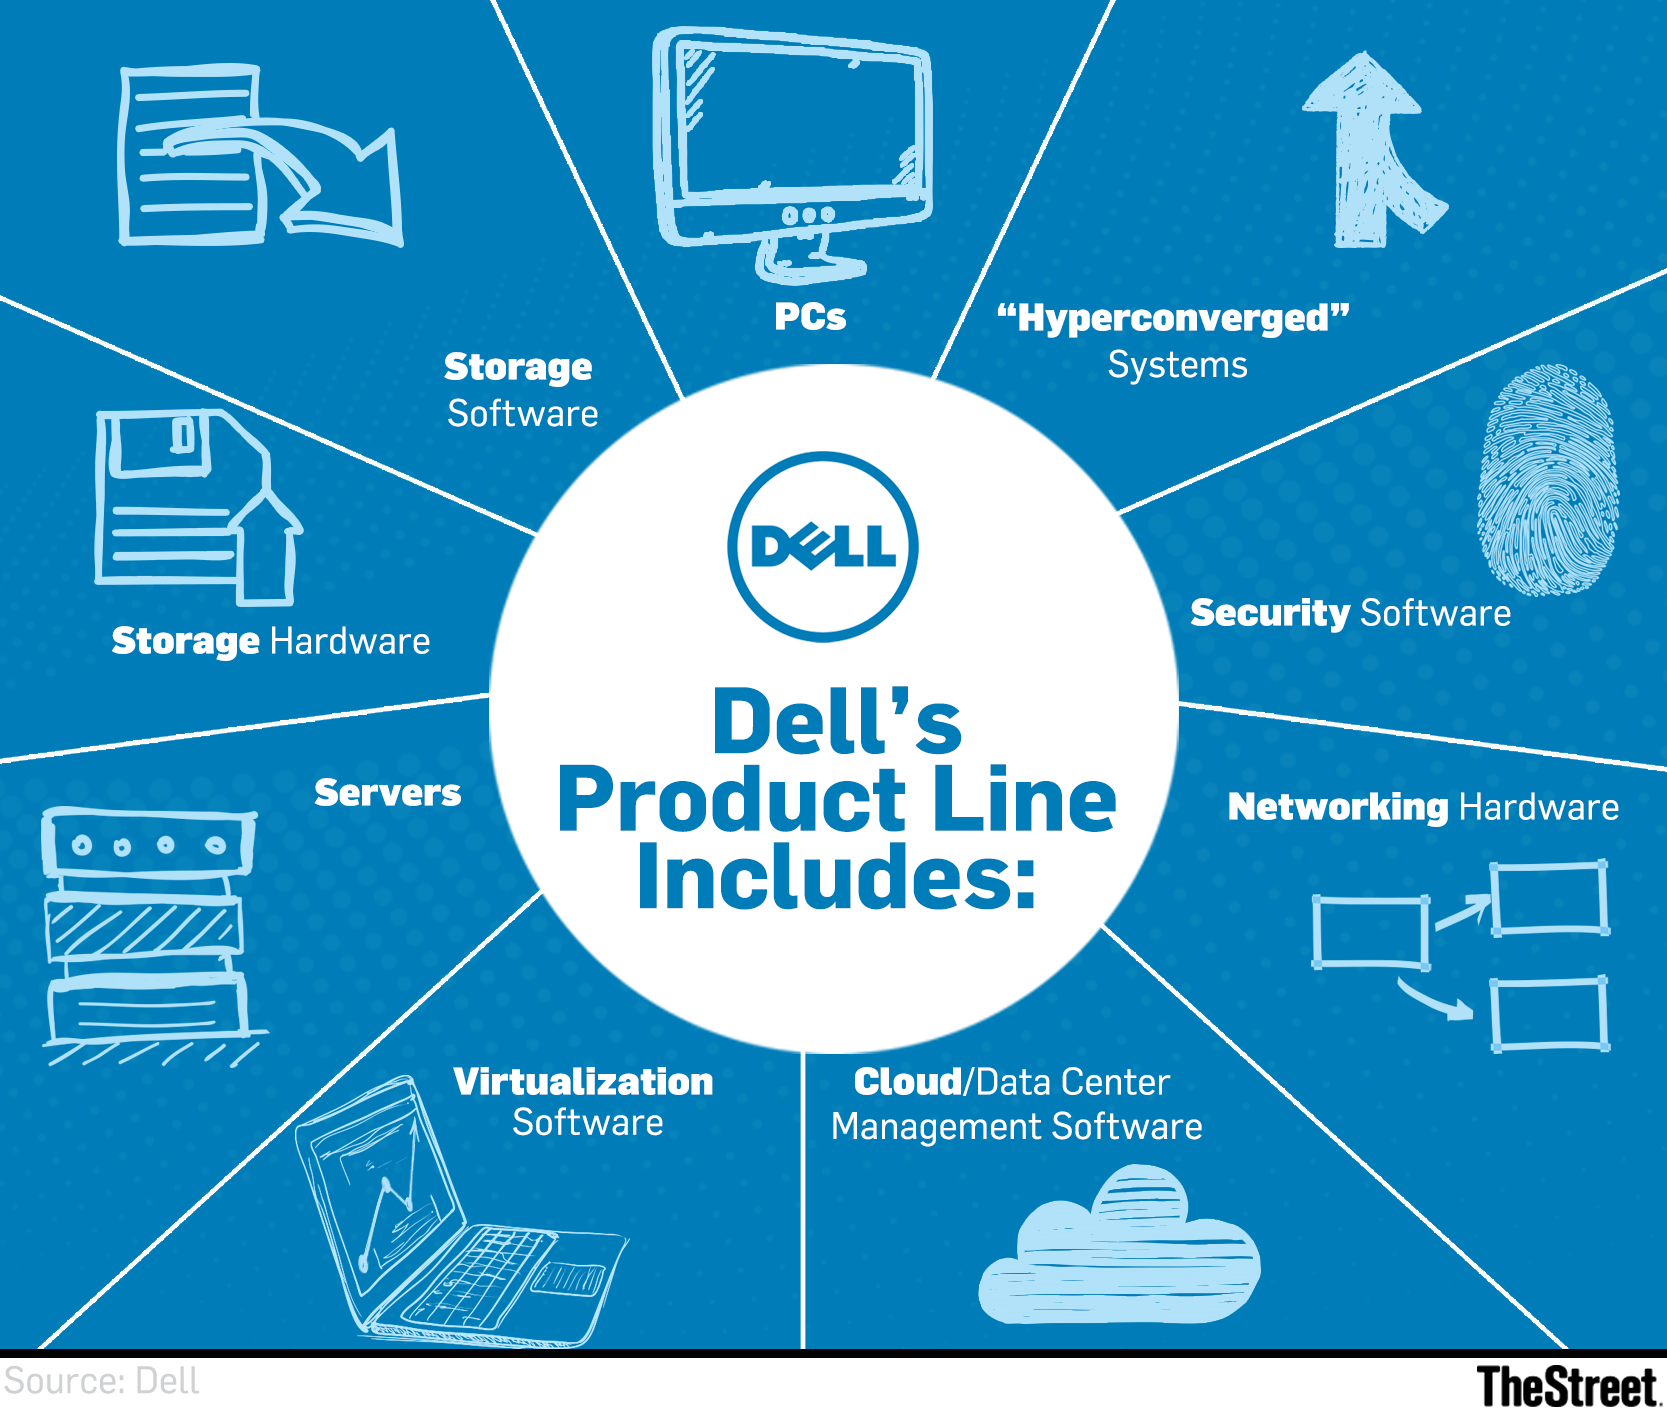 Now is the perfect time for dell to go public thestreet but selling servers to cloud giants is widely seen as a low margin business those companies tend to buy modular servers based on internal or open source biocorpaavc Images